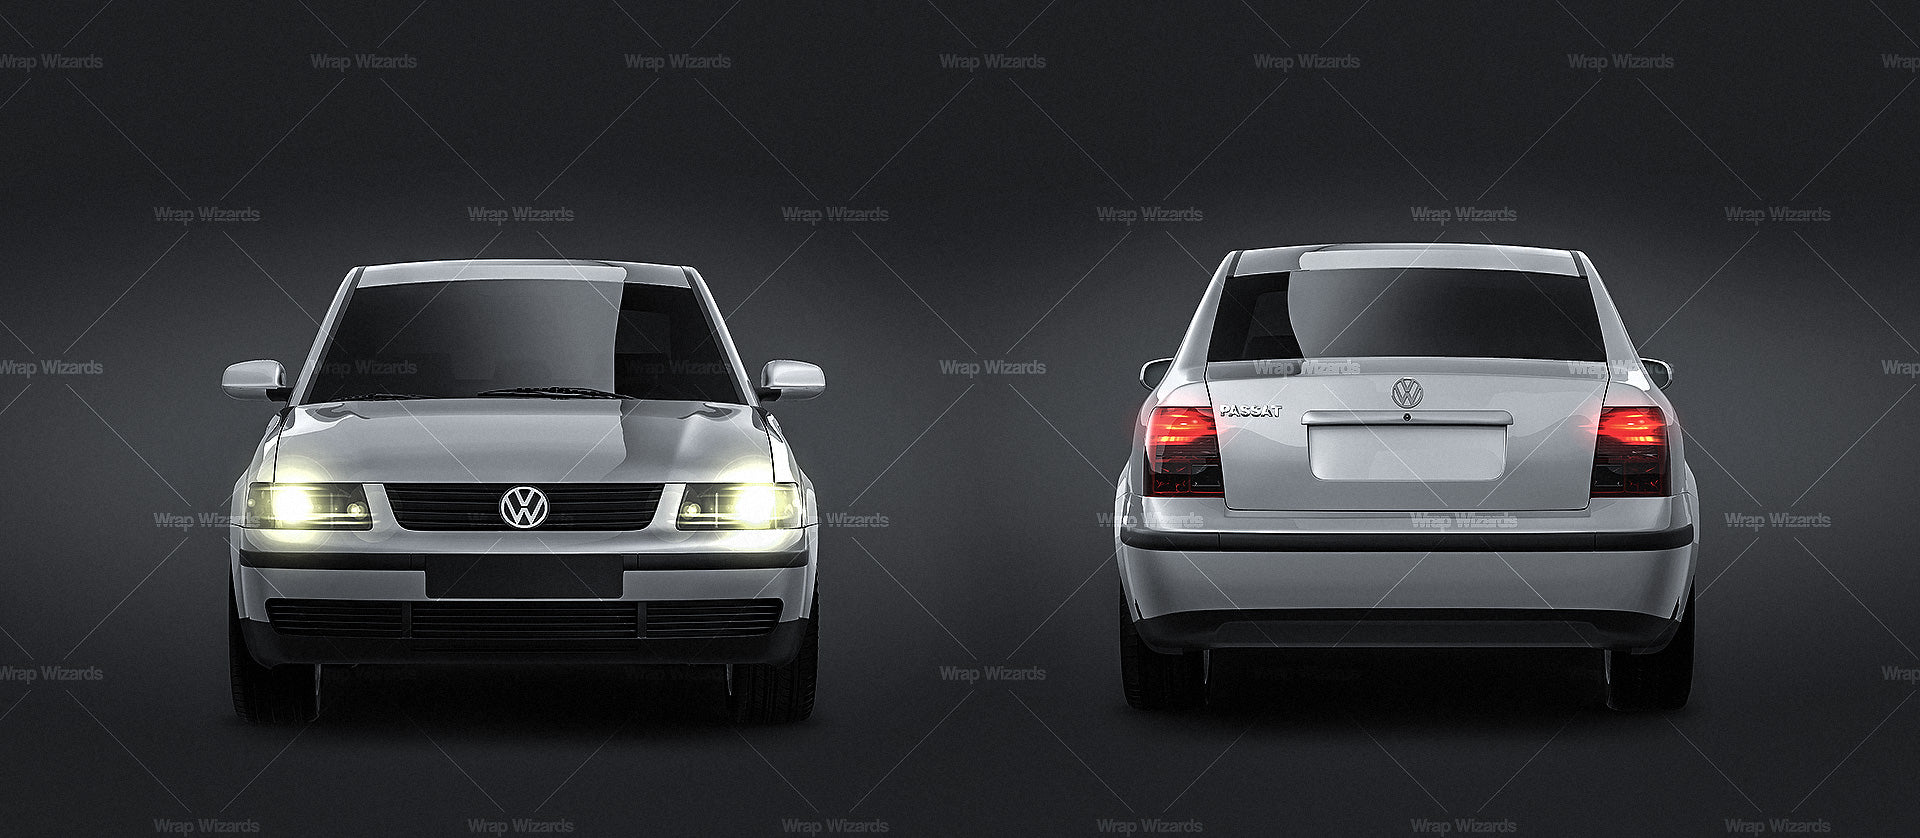 Volkswagen Passat B5 Sedan glossy finish - all sides Car Mockup Template.psd